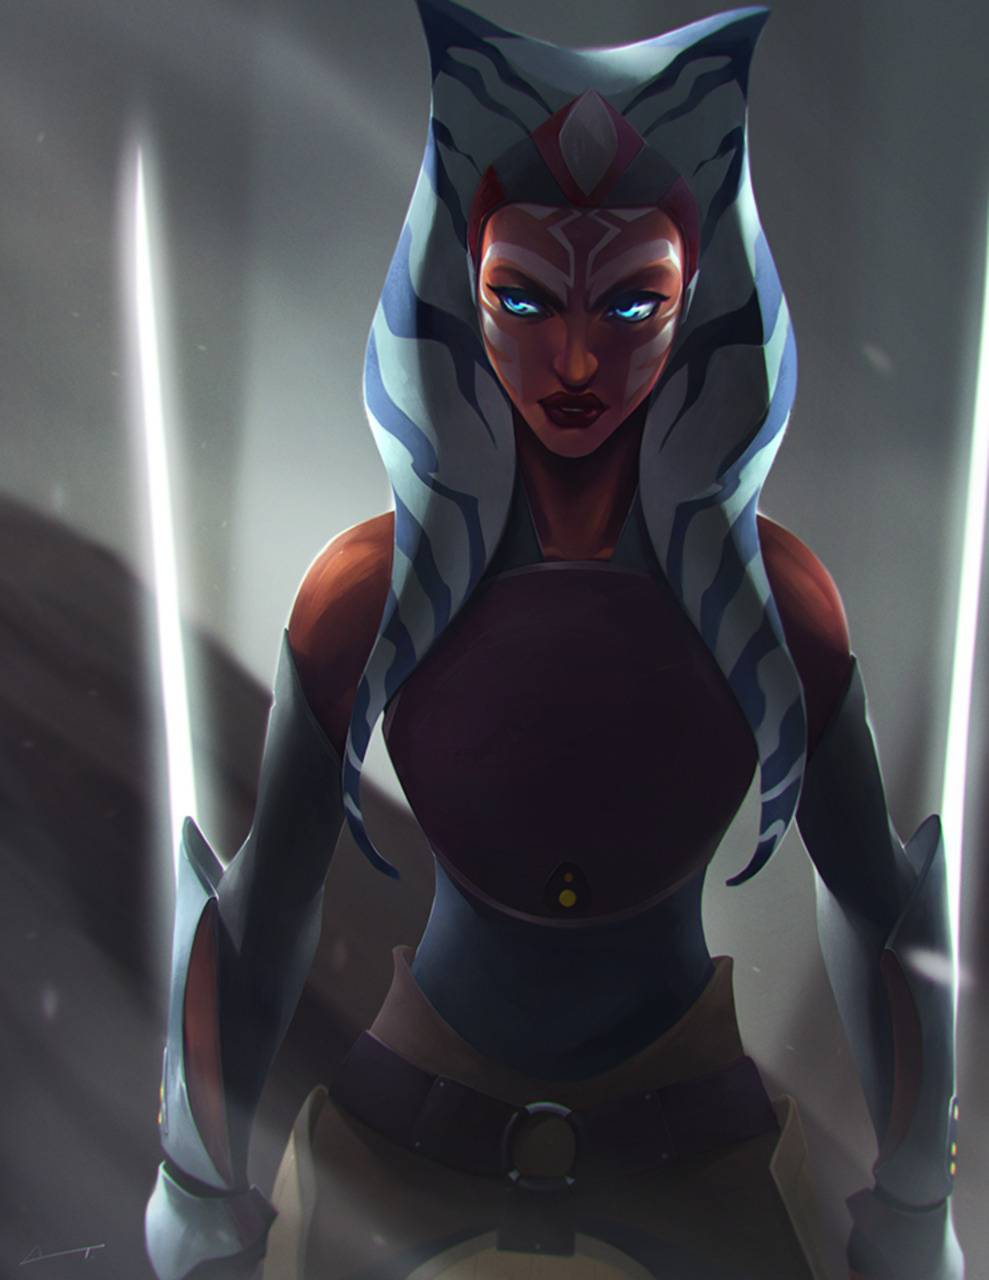 Ahsoka Tano Wallpaper By Darthbaren 5c Free On Zedge